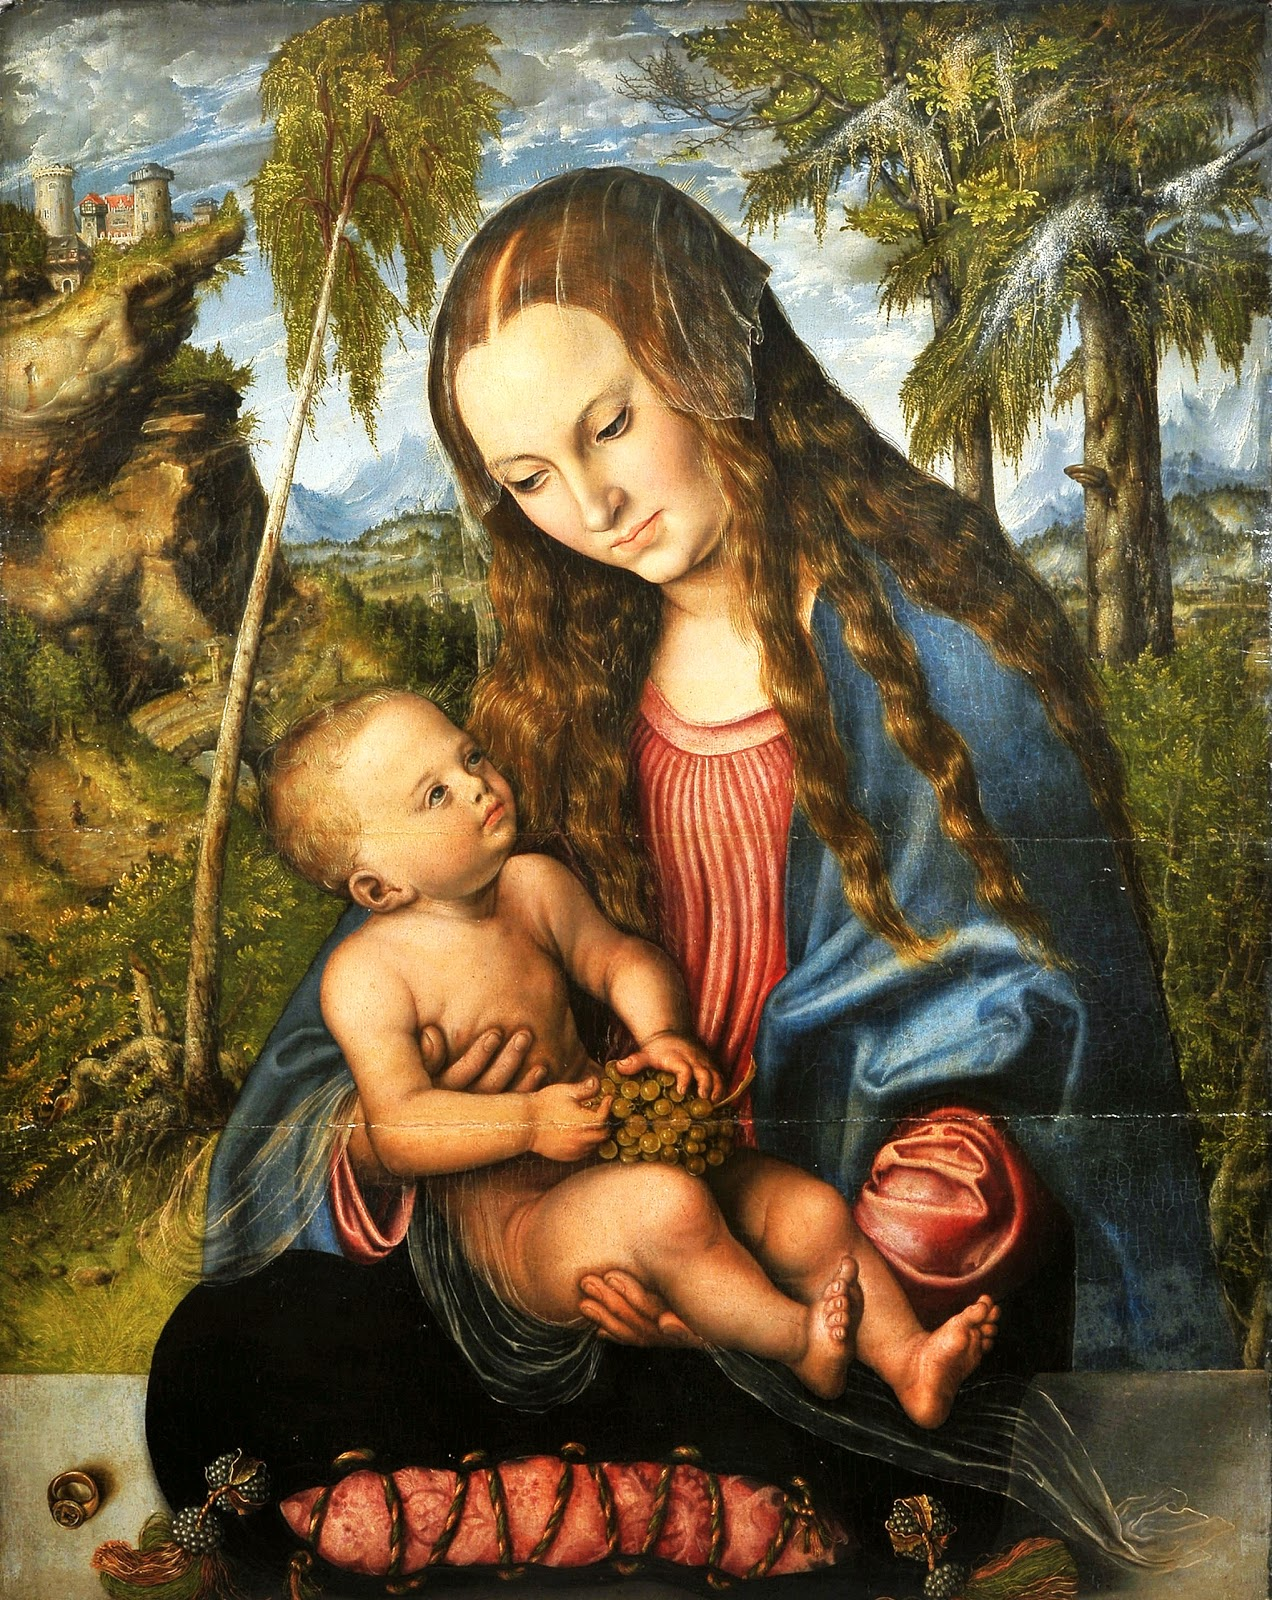 Lucas Cranach the Elder | Northern Renaissance painter | Tutt'Art@ |  Pittura • Scultura • Poesia • Musica